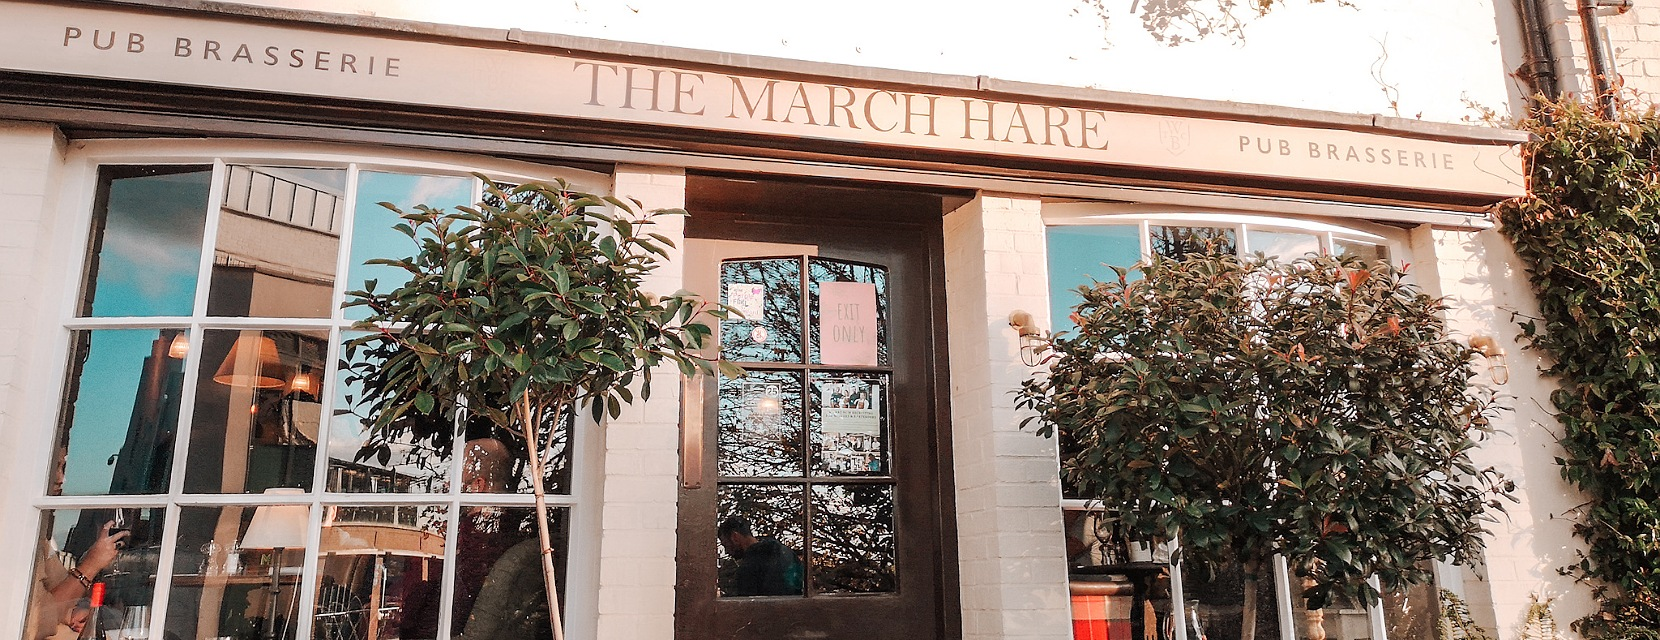 Sunday Lunch at The March Hare, Guildford 72